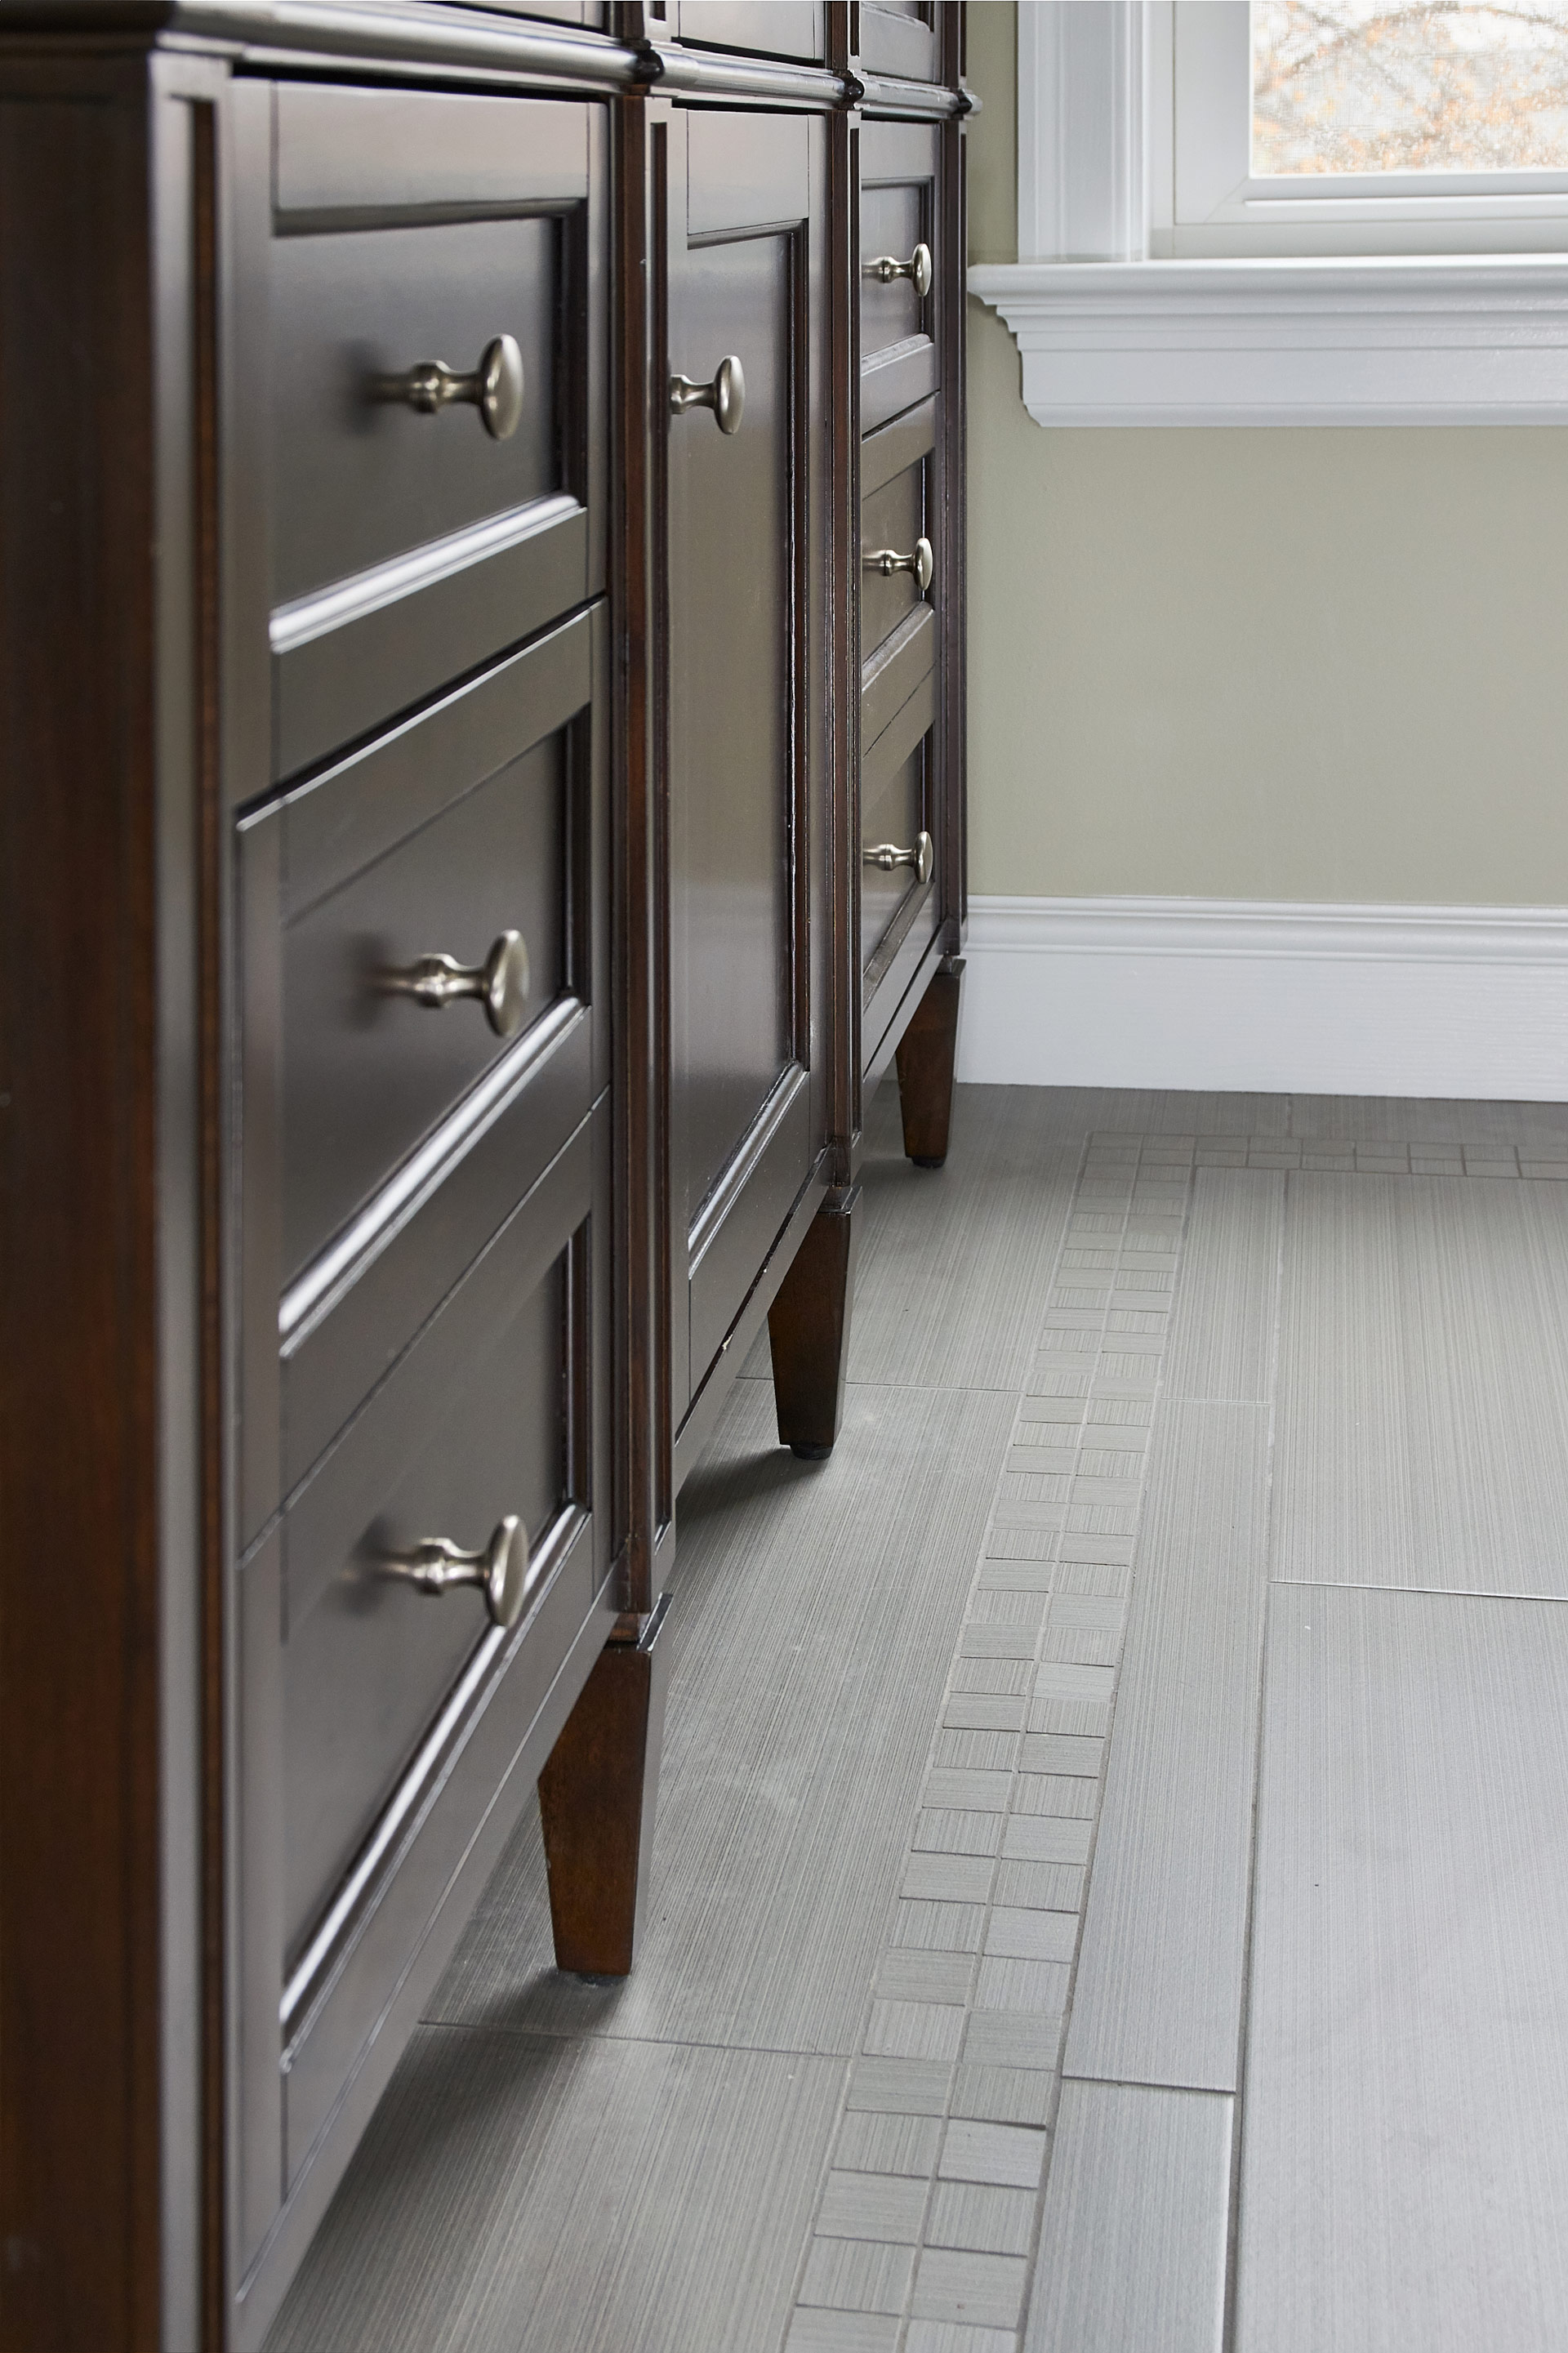 Cabinetry and Tiling Detail